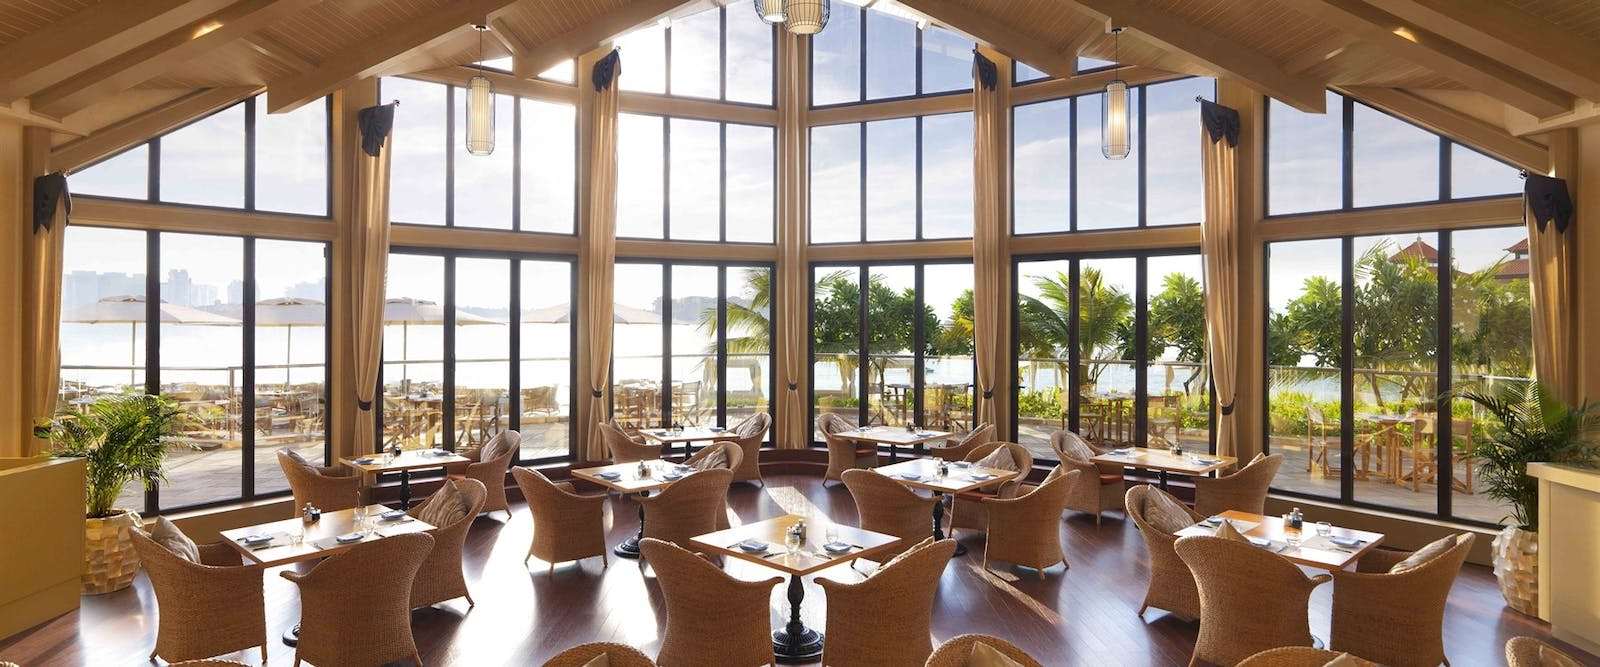 The Beach House Restaurant at Anantara Dubai The Palm Resort & Spa